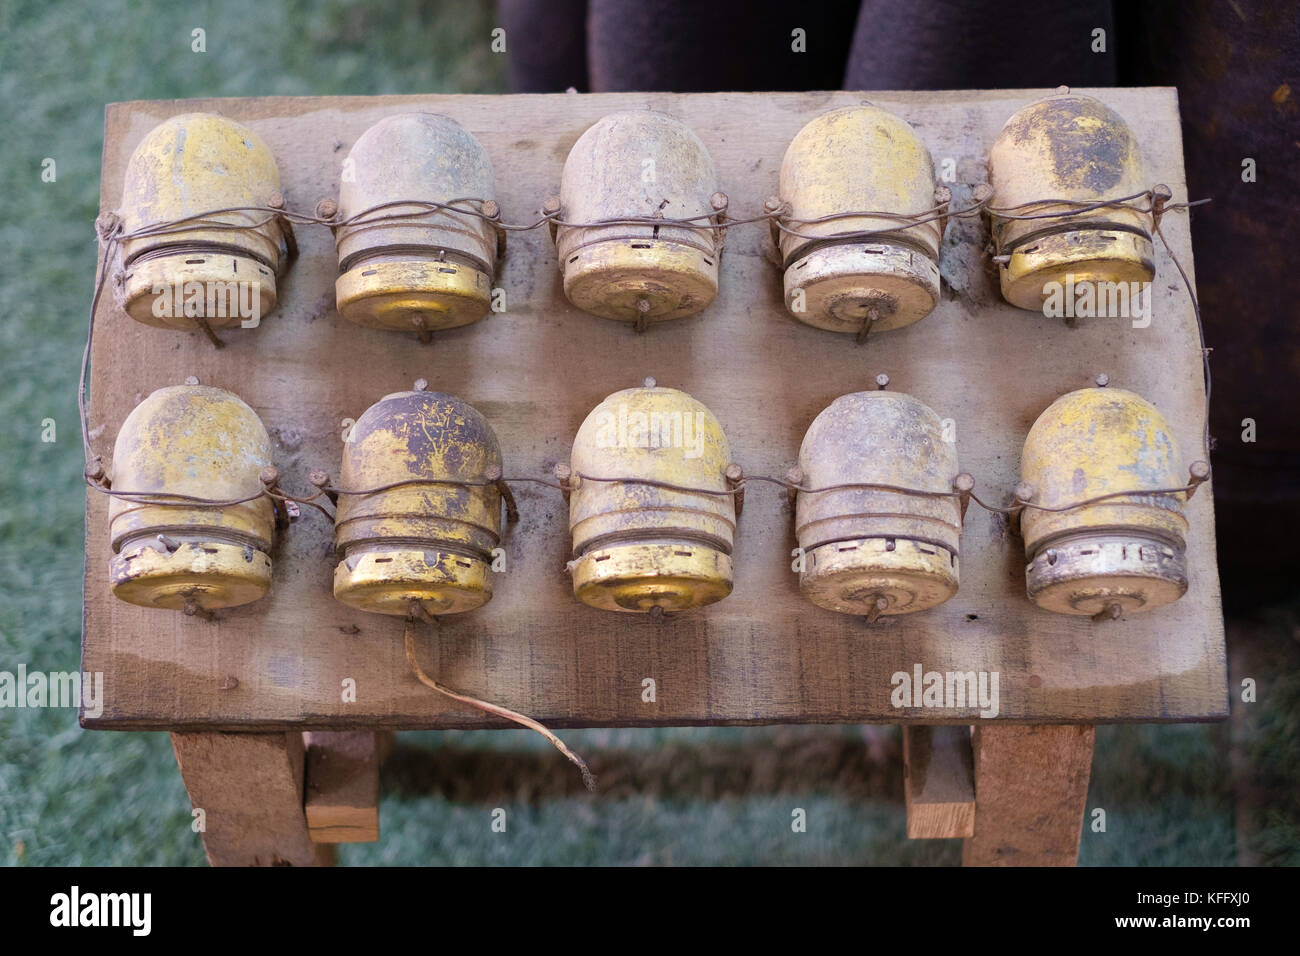 Grenades from the Vietnam War, on display at Cu Chi - Stock Image